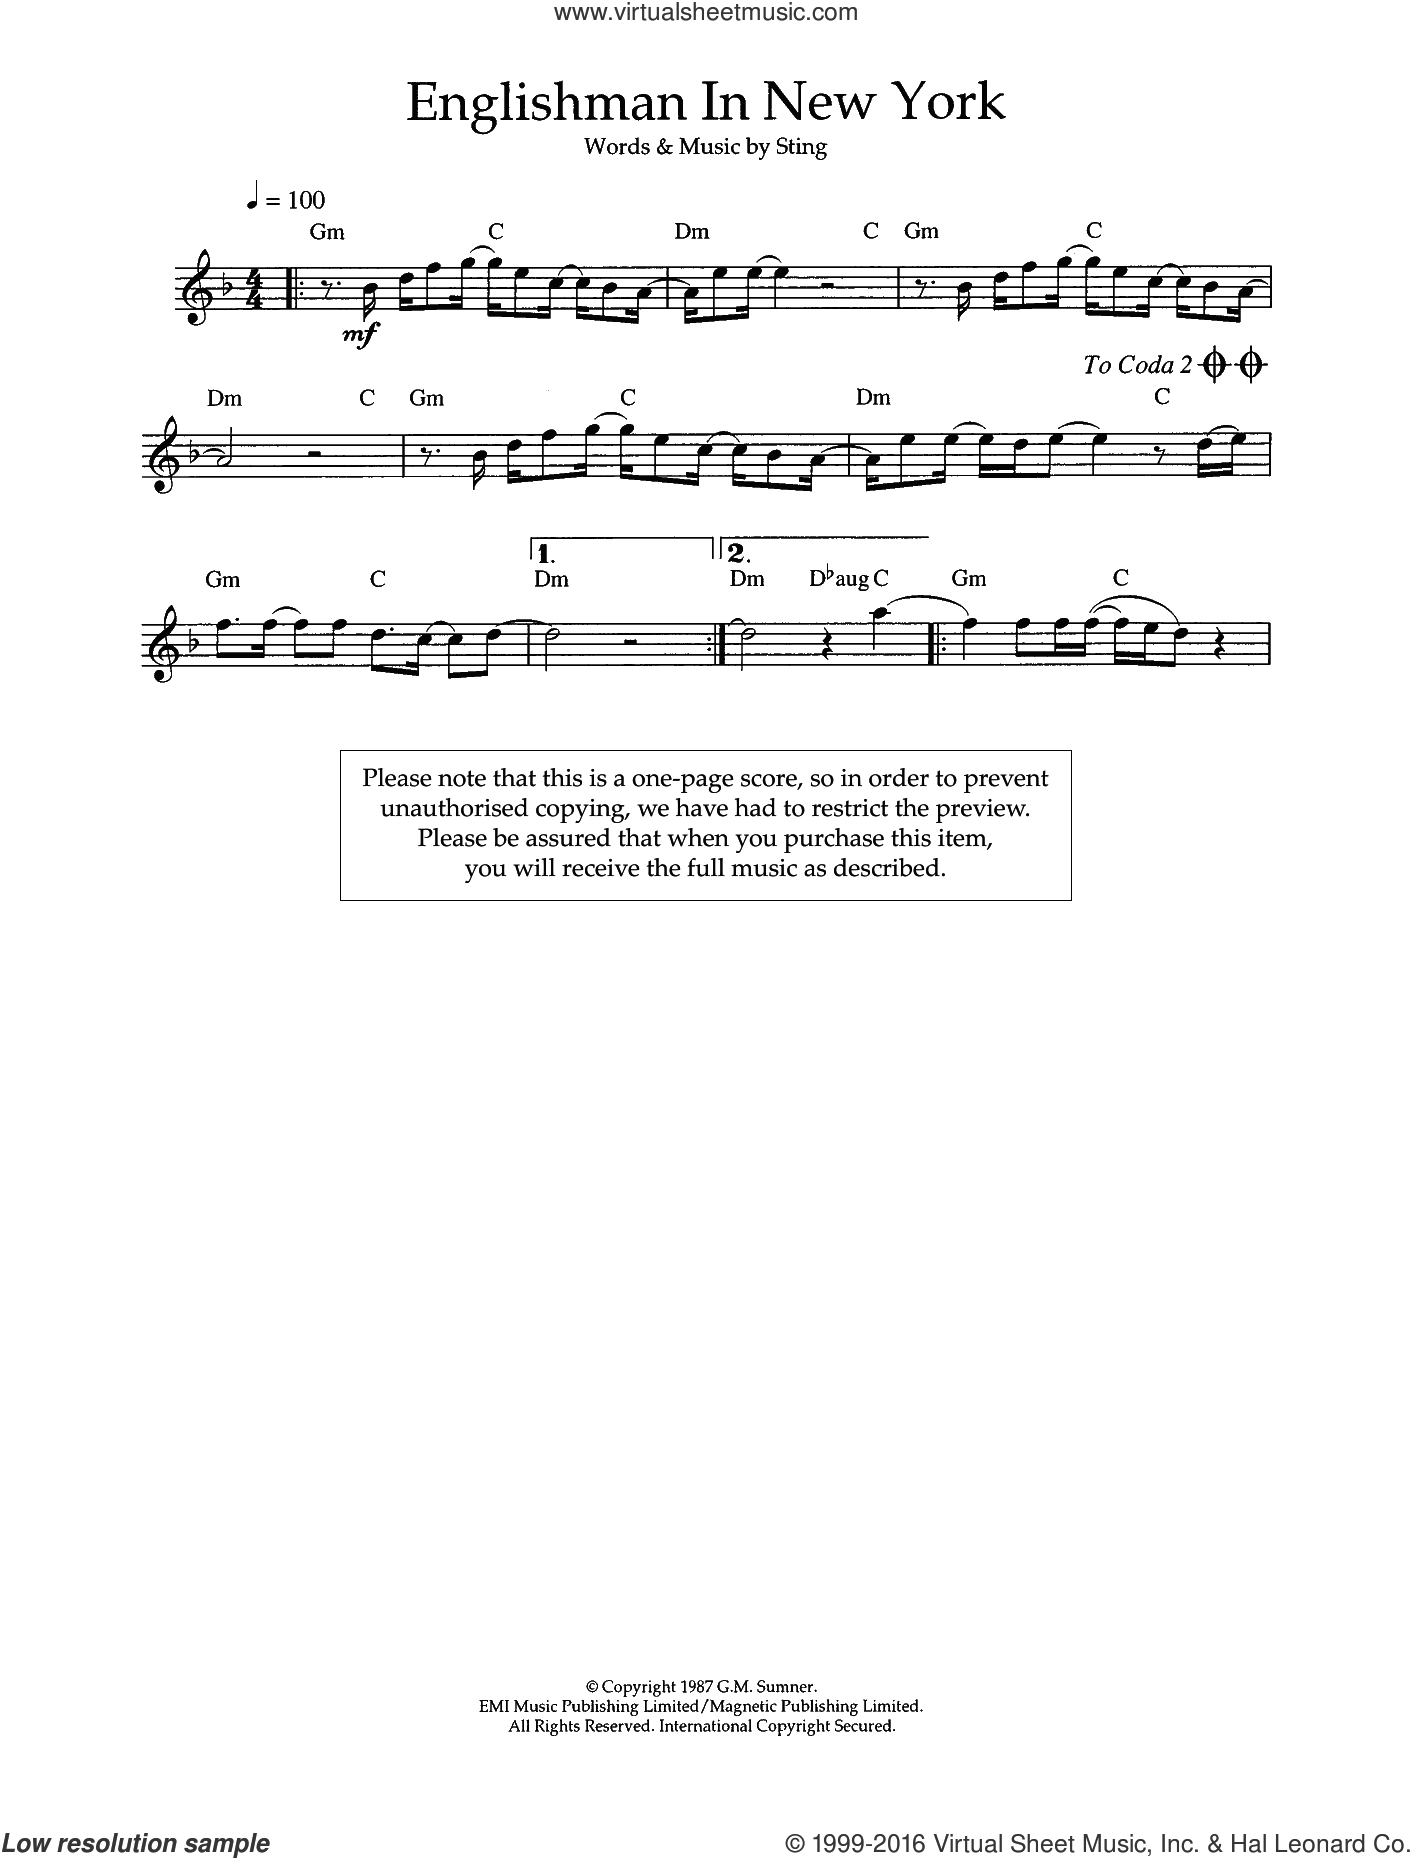 Englishman In New York sheet music for flute solo by Sting. Score Image Preview.